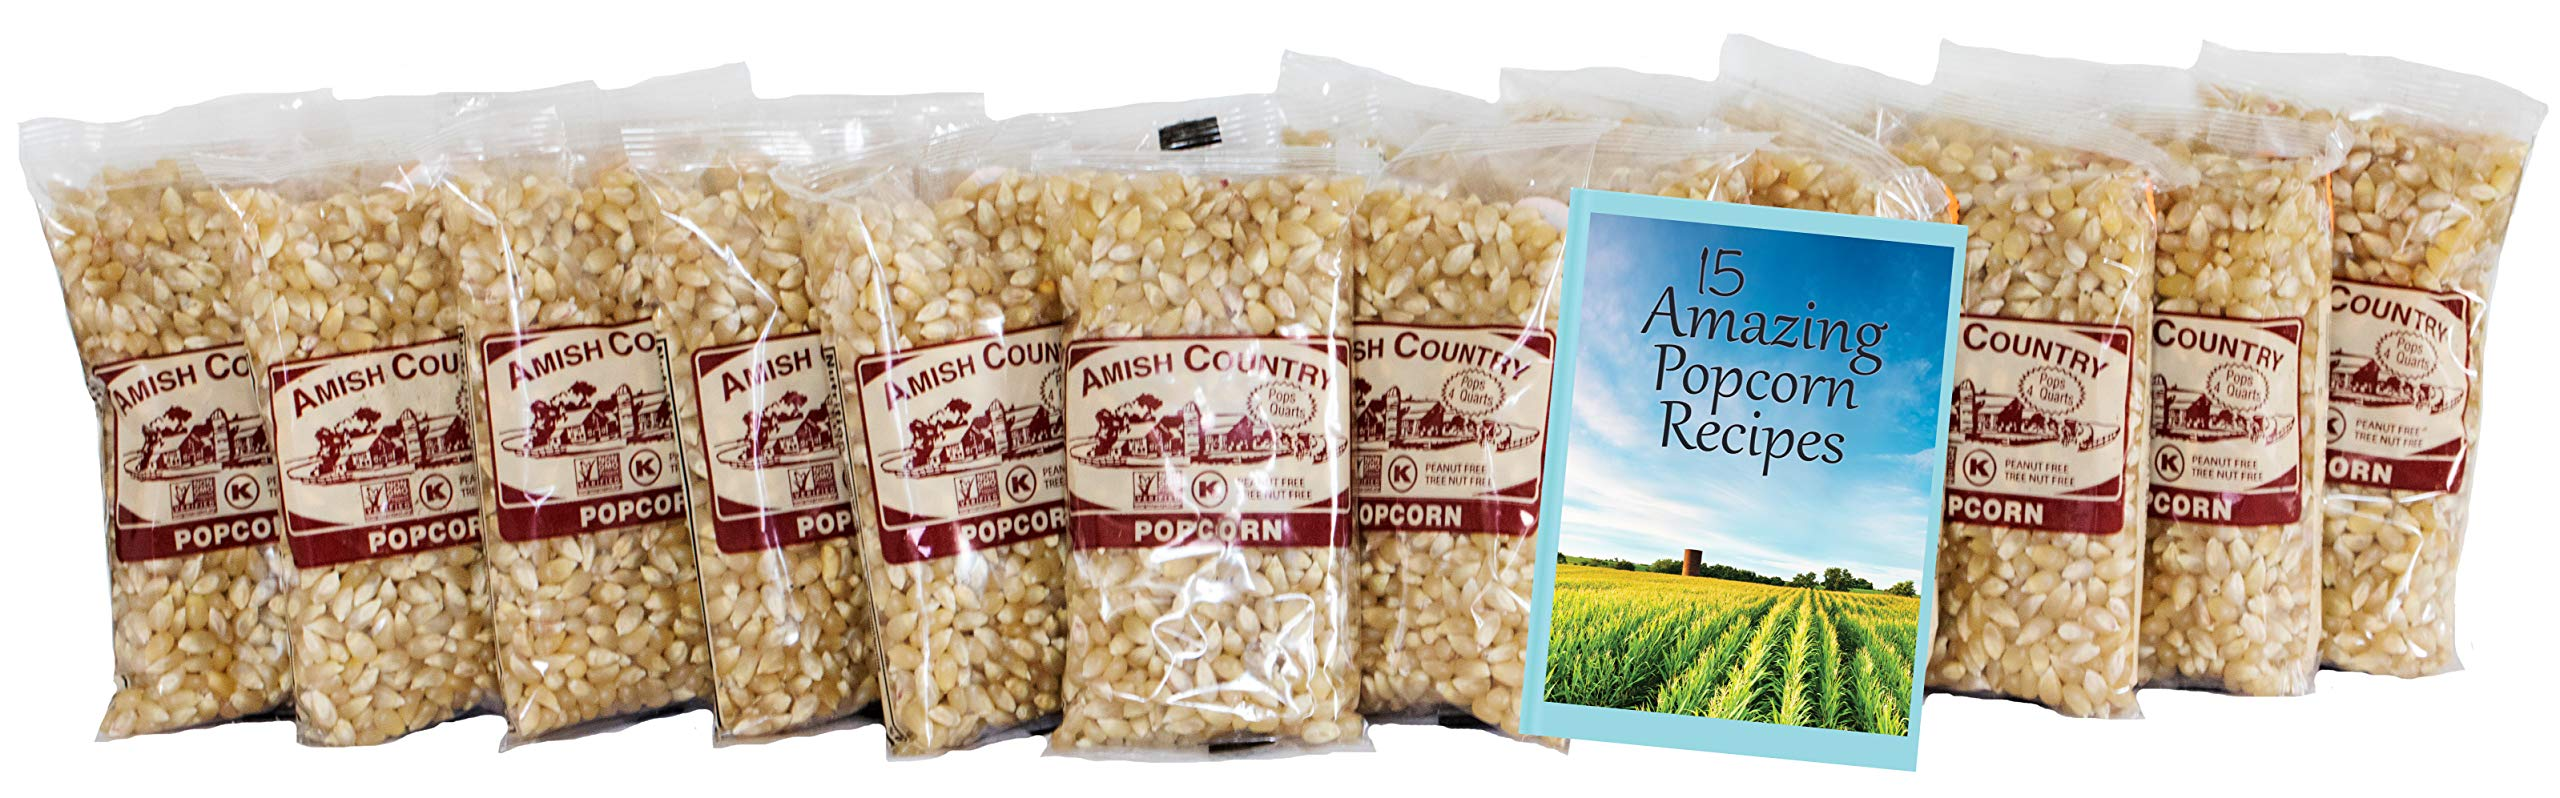 Amish Country Popcorn - Old Fashioned Baby White - (4 Ounce - 24 Bags) - Small & Tender Popcorn - With Recipe Guide by Amish Country Popcorn (Image #2)